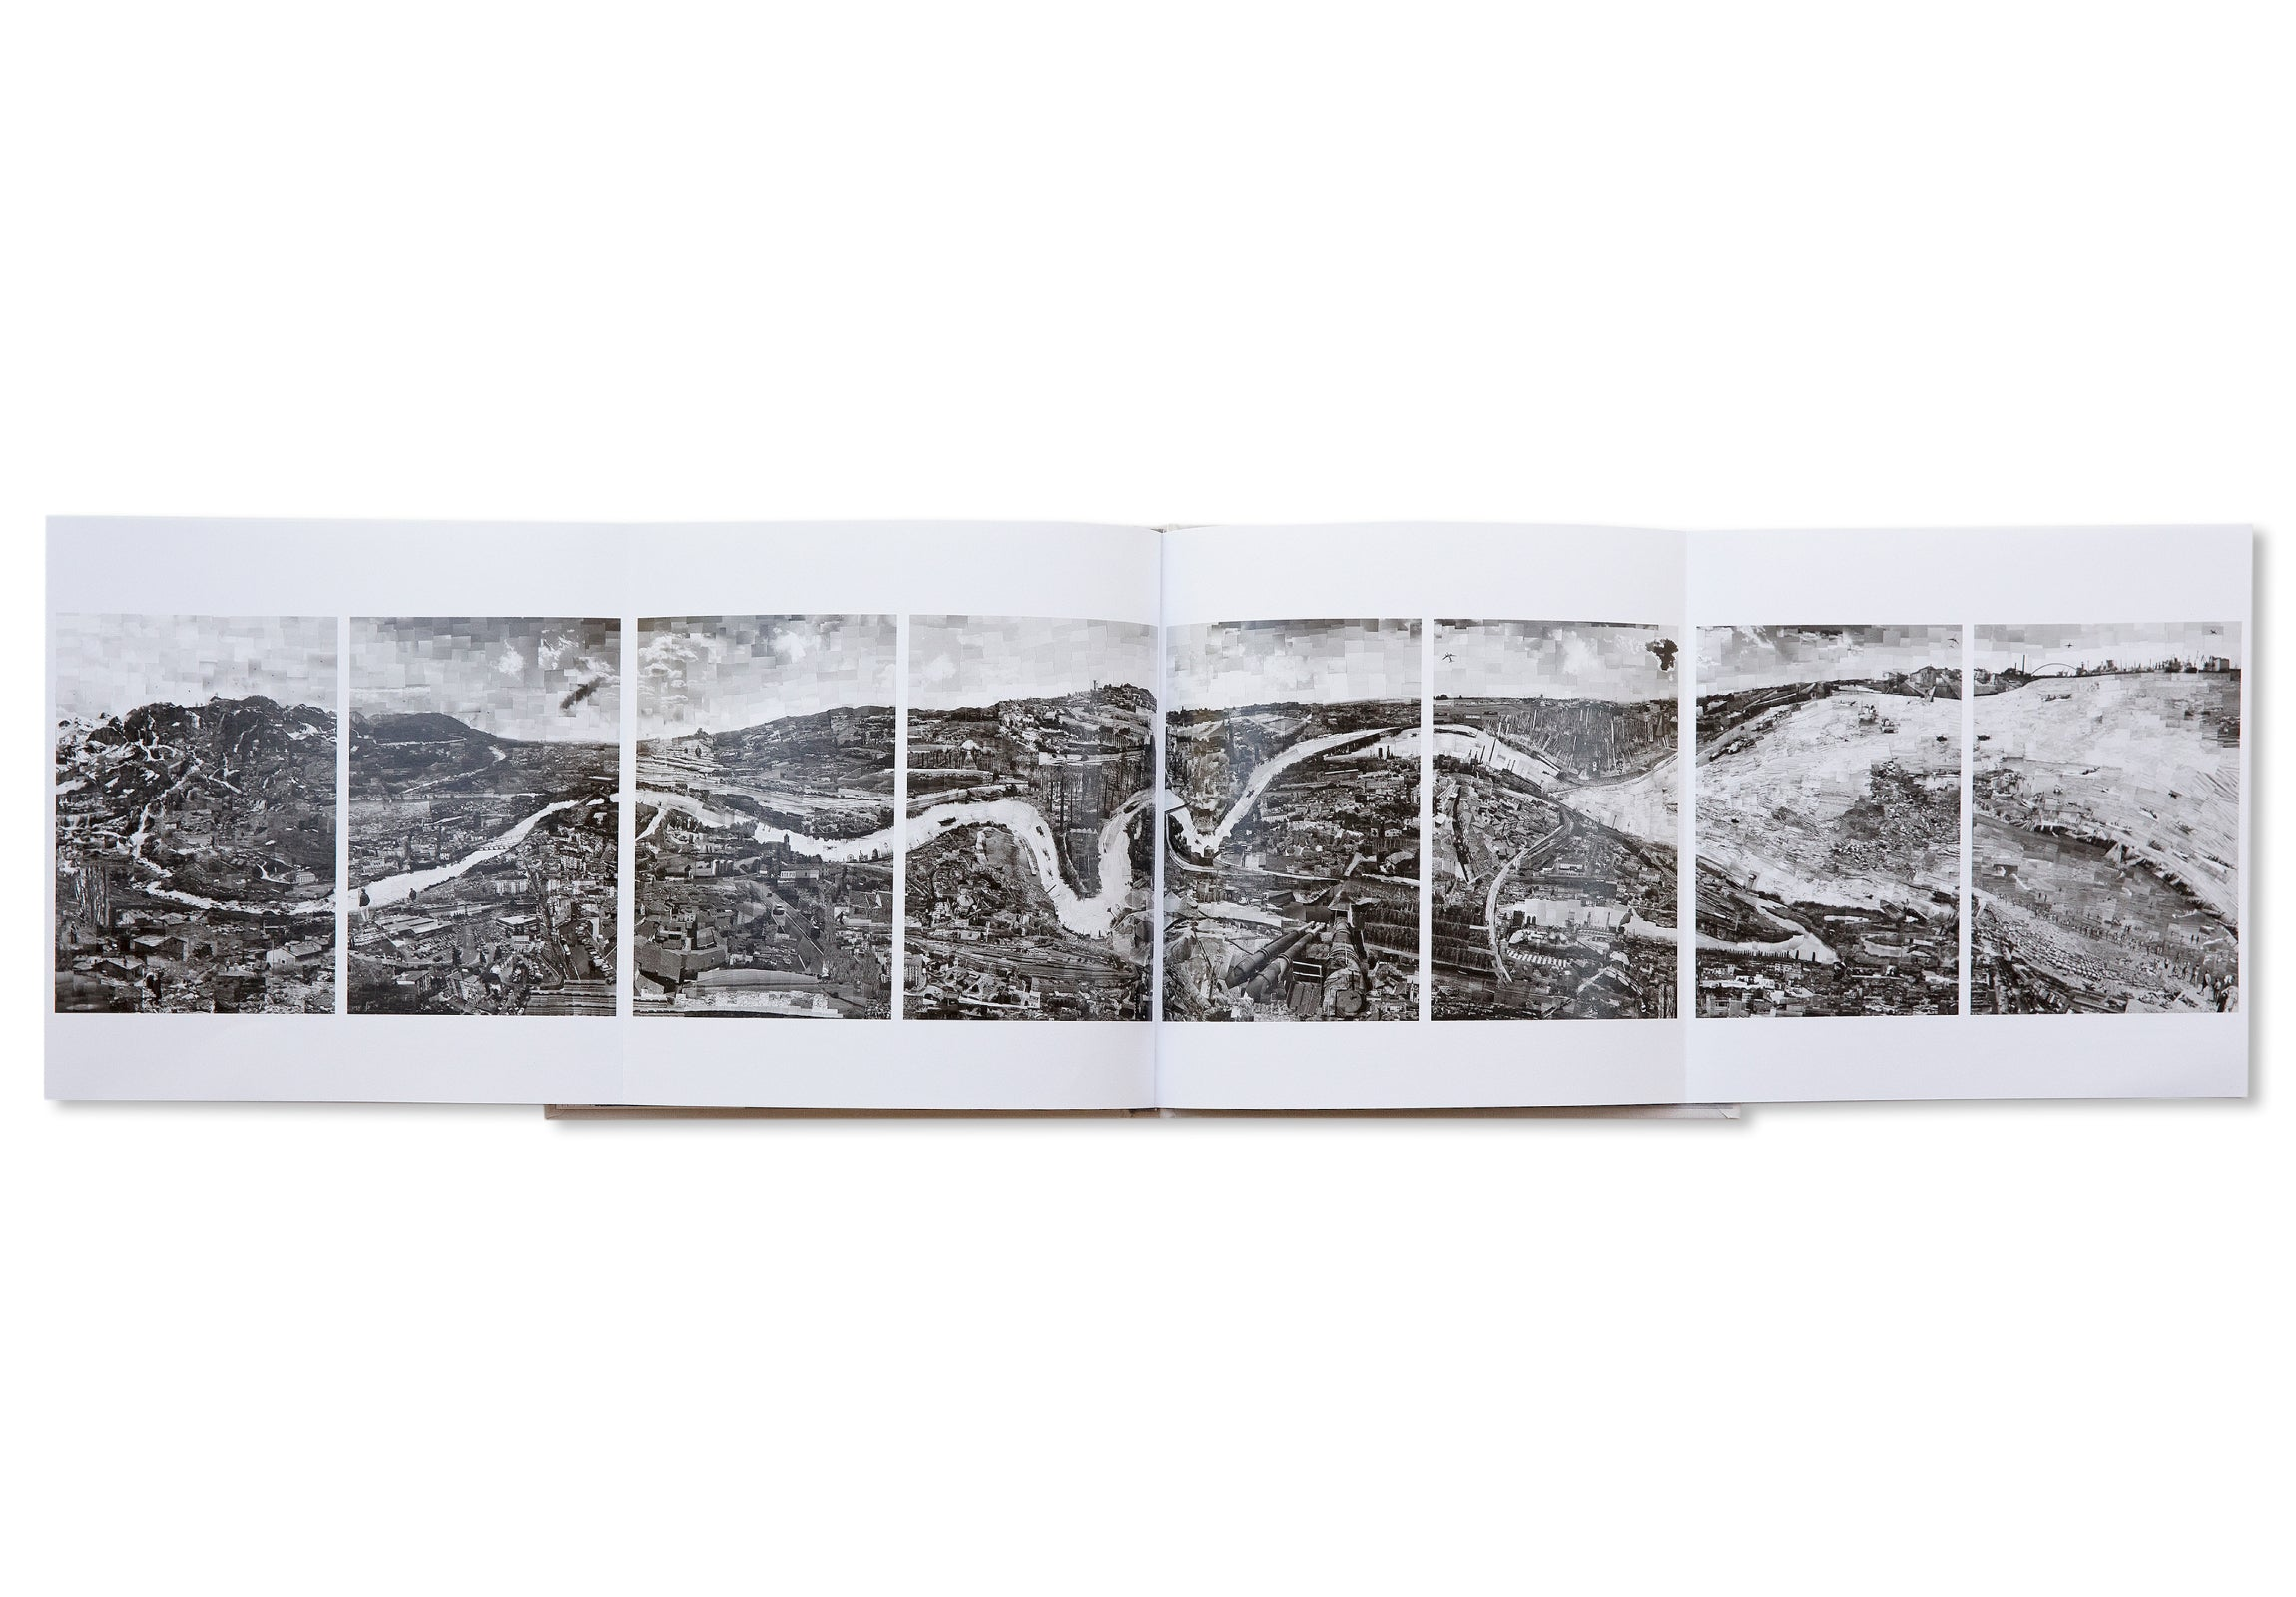 WATER LINE. A STORY OF THE PO RIVER by Sohei Nishino [SIGNED]